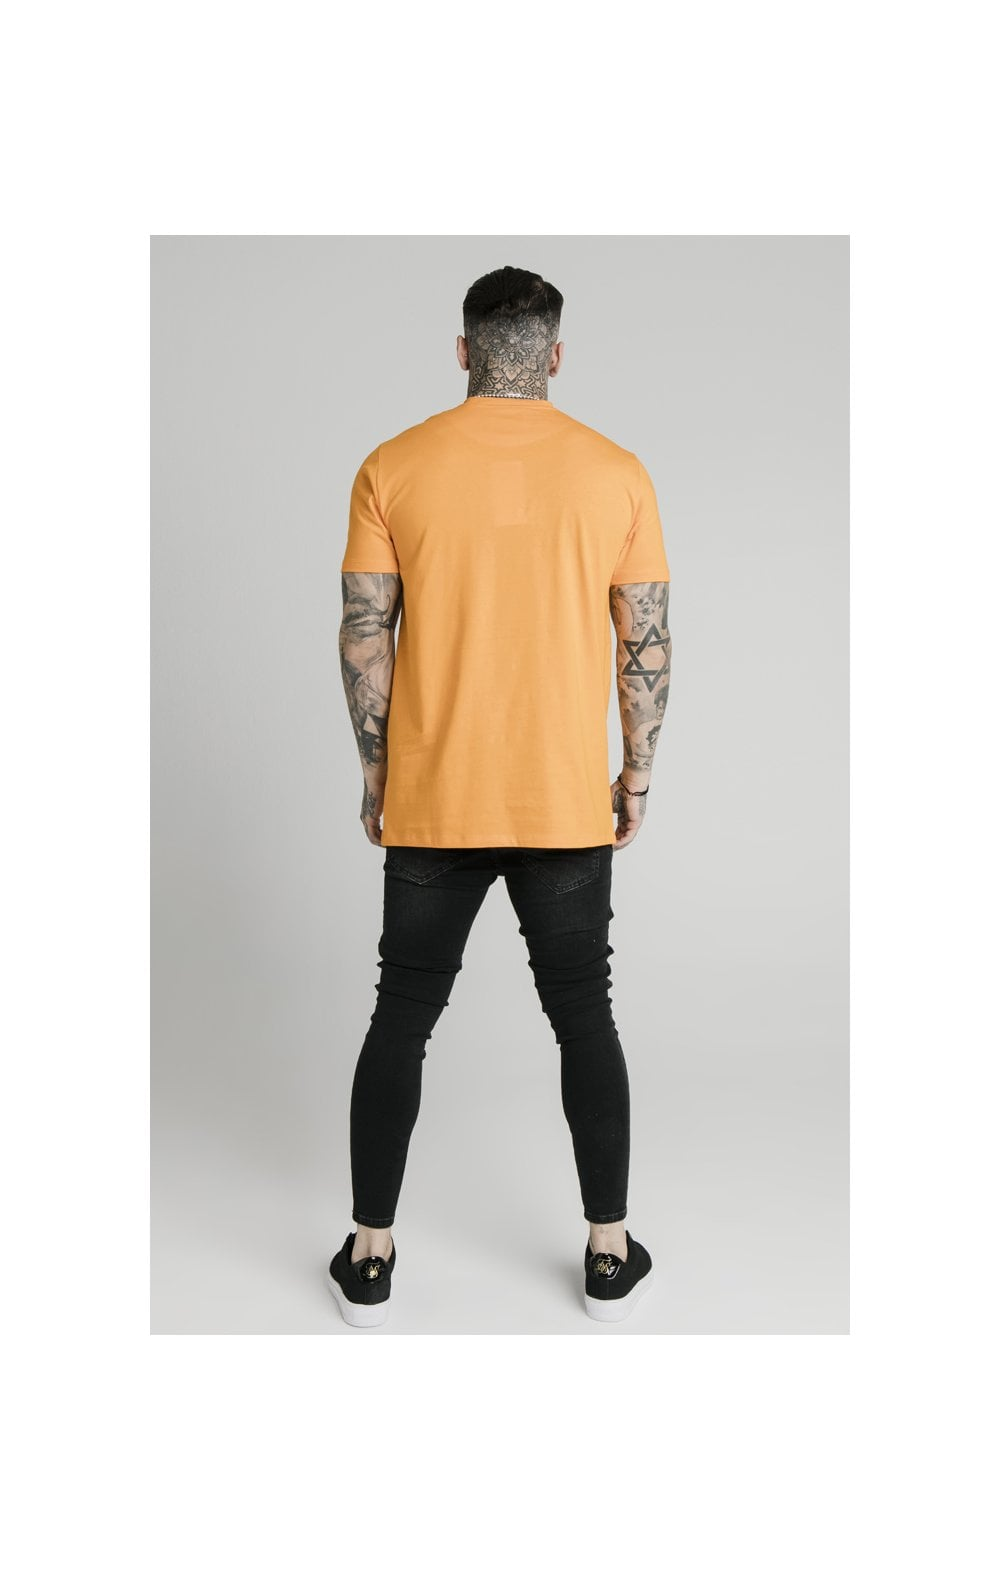 SikSilk S/S Square Hem Tee – Orange (4)